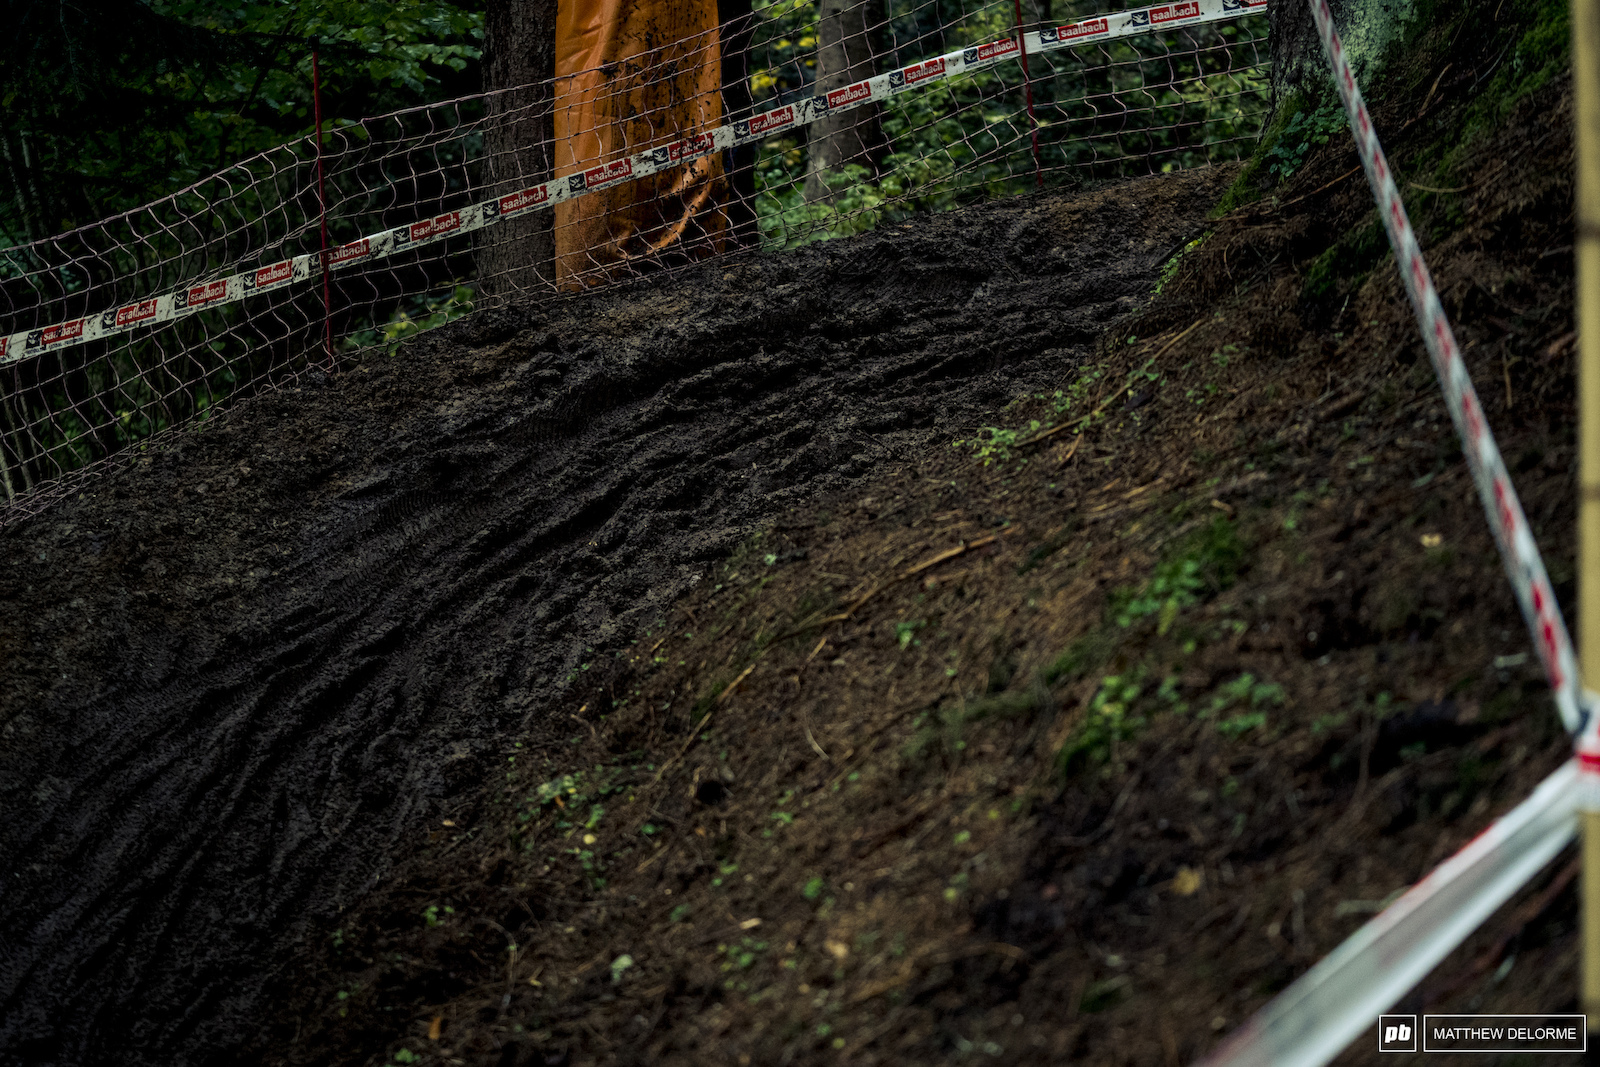 Dem ruts got deep after the ebikes tore through.